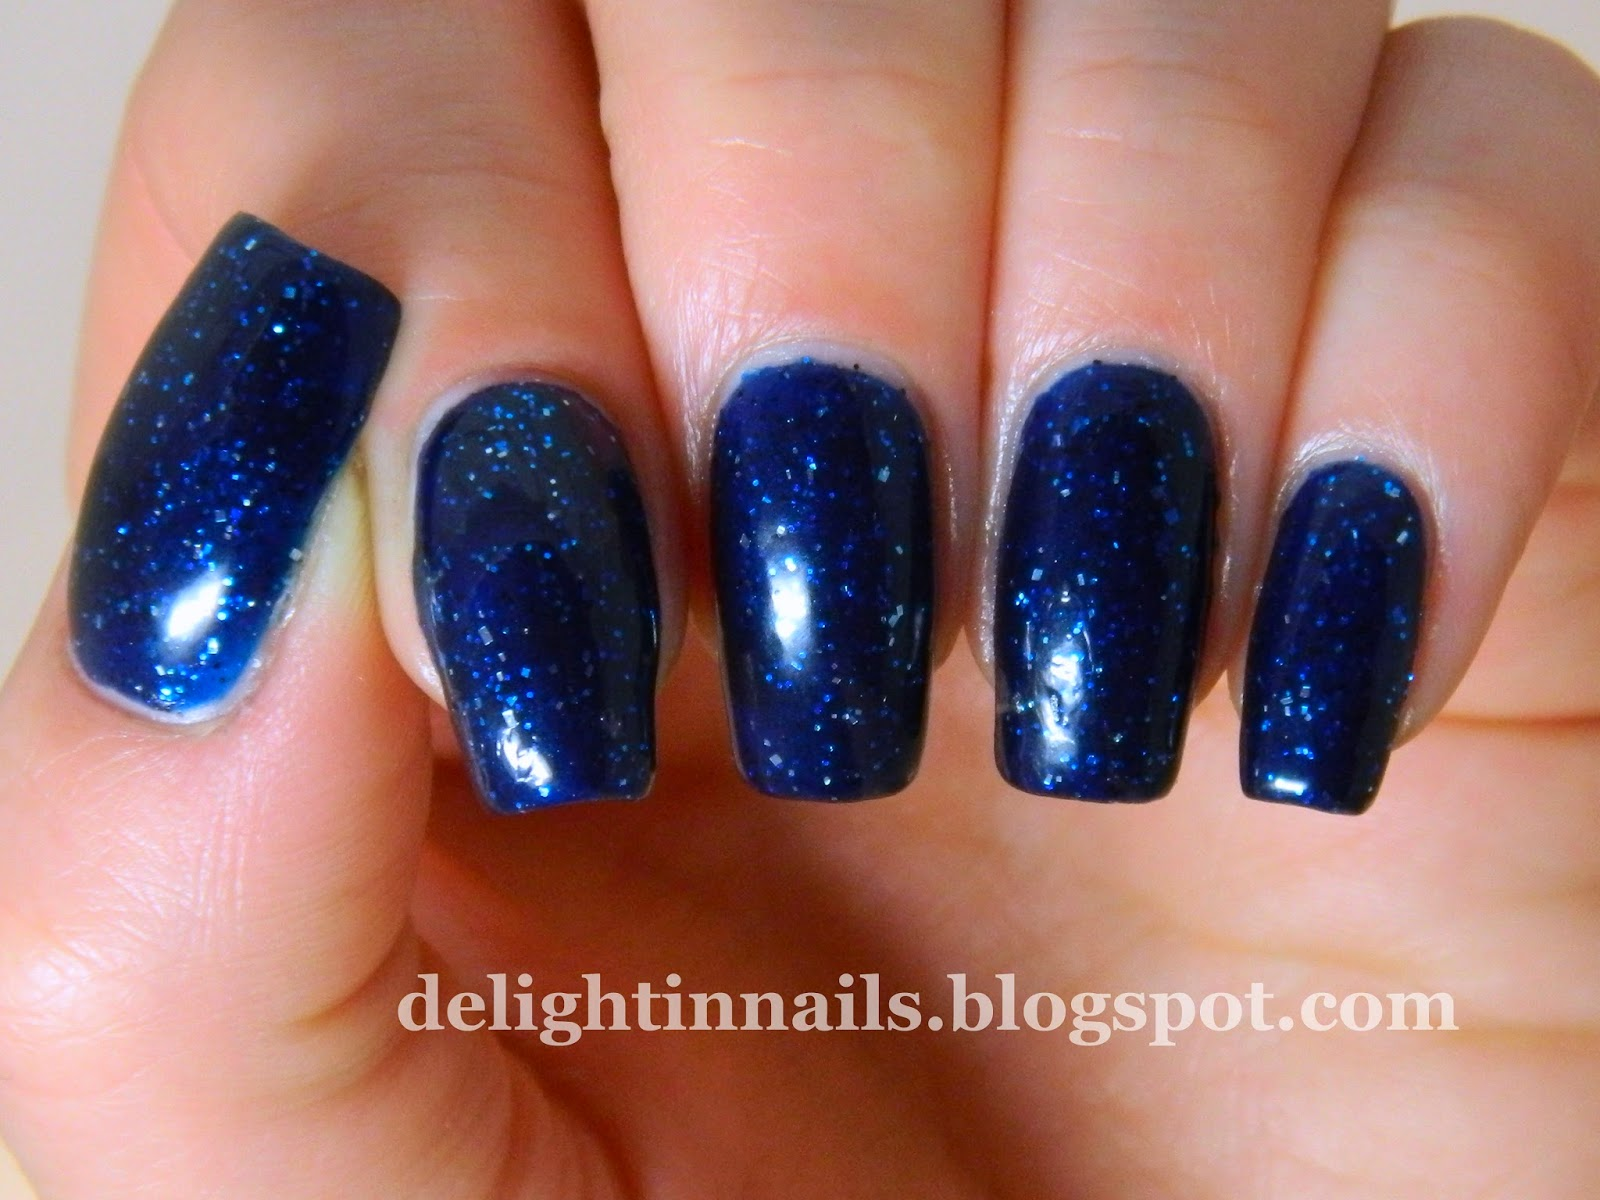 Nail Designs For Funeral: Funeral nail designs images.